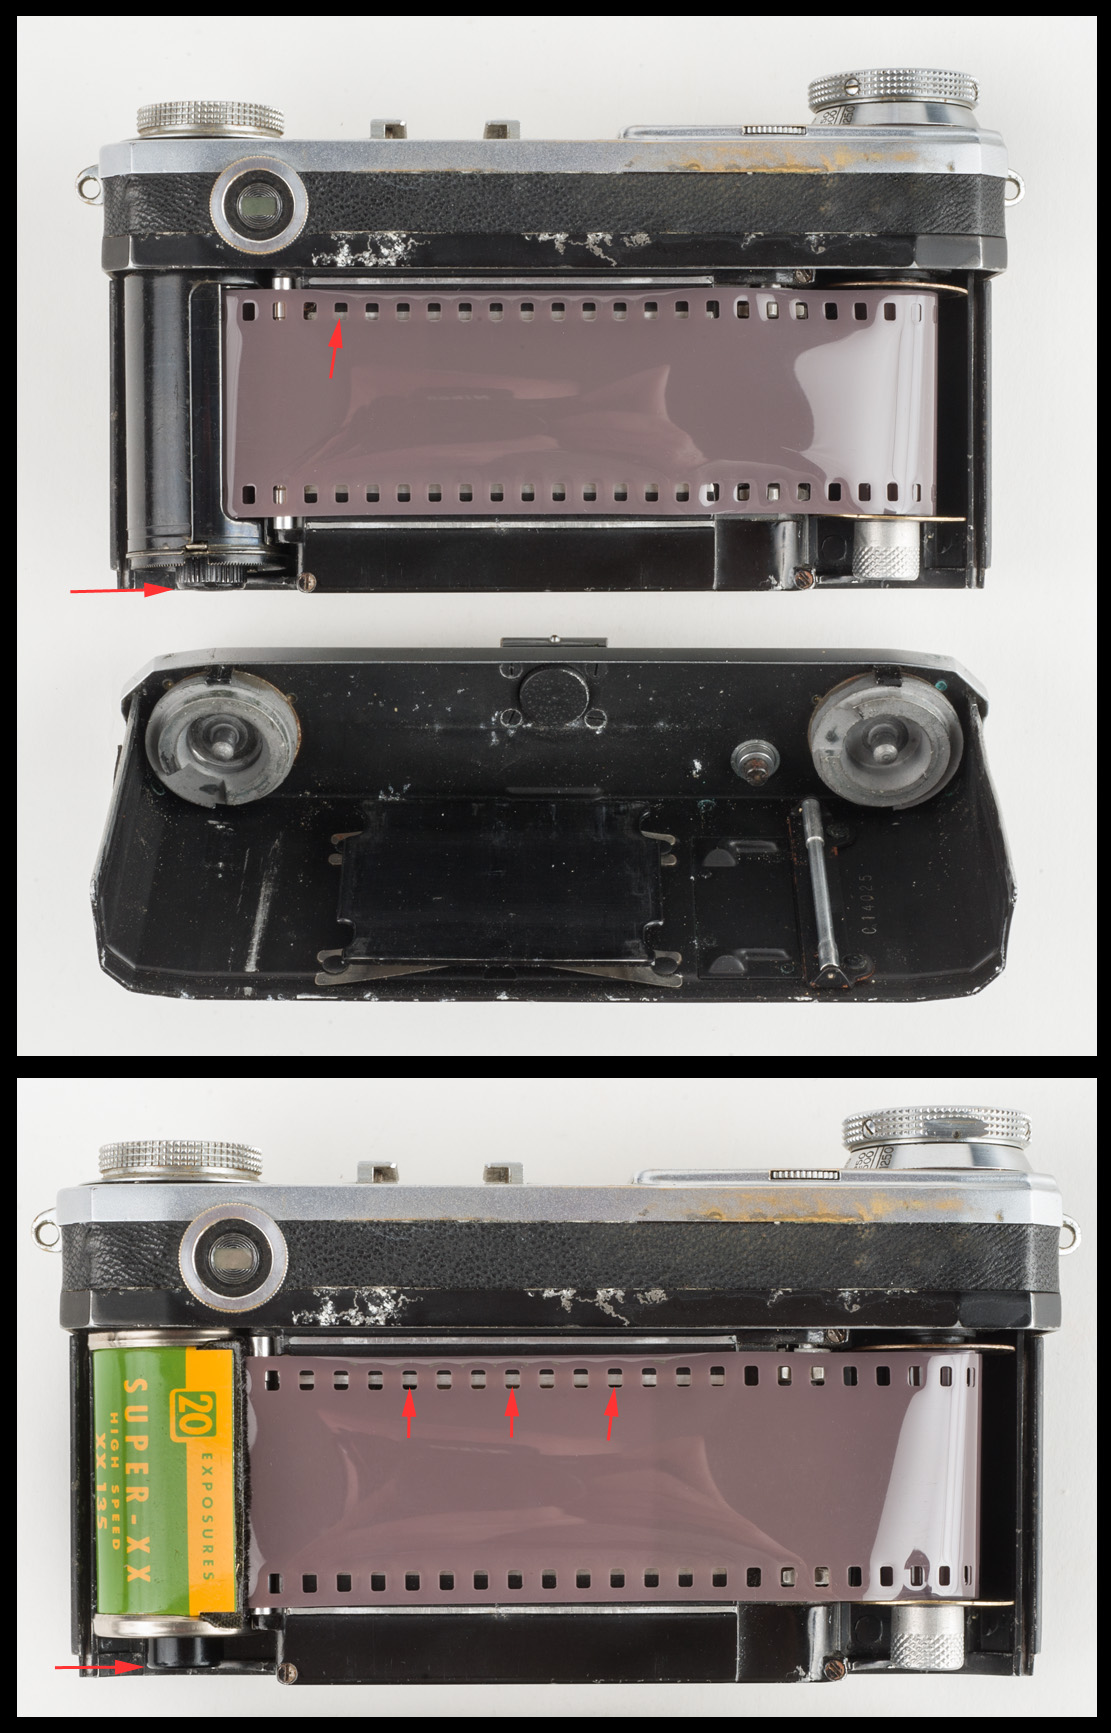 Comparison of Zeiss Ikon cassette with misaligned Kodak cassette. (Note red arrows in bottom photo, pointing to where incoming light from the lens would expose the bottom edge of the top sprocket holes.) Photos © 2015 by Rob McElroy.